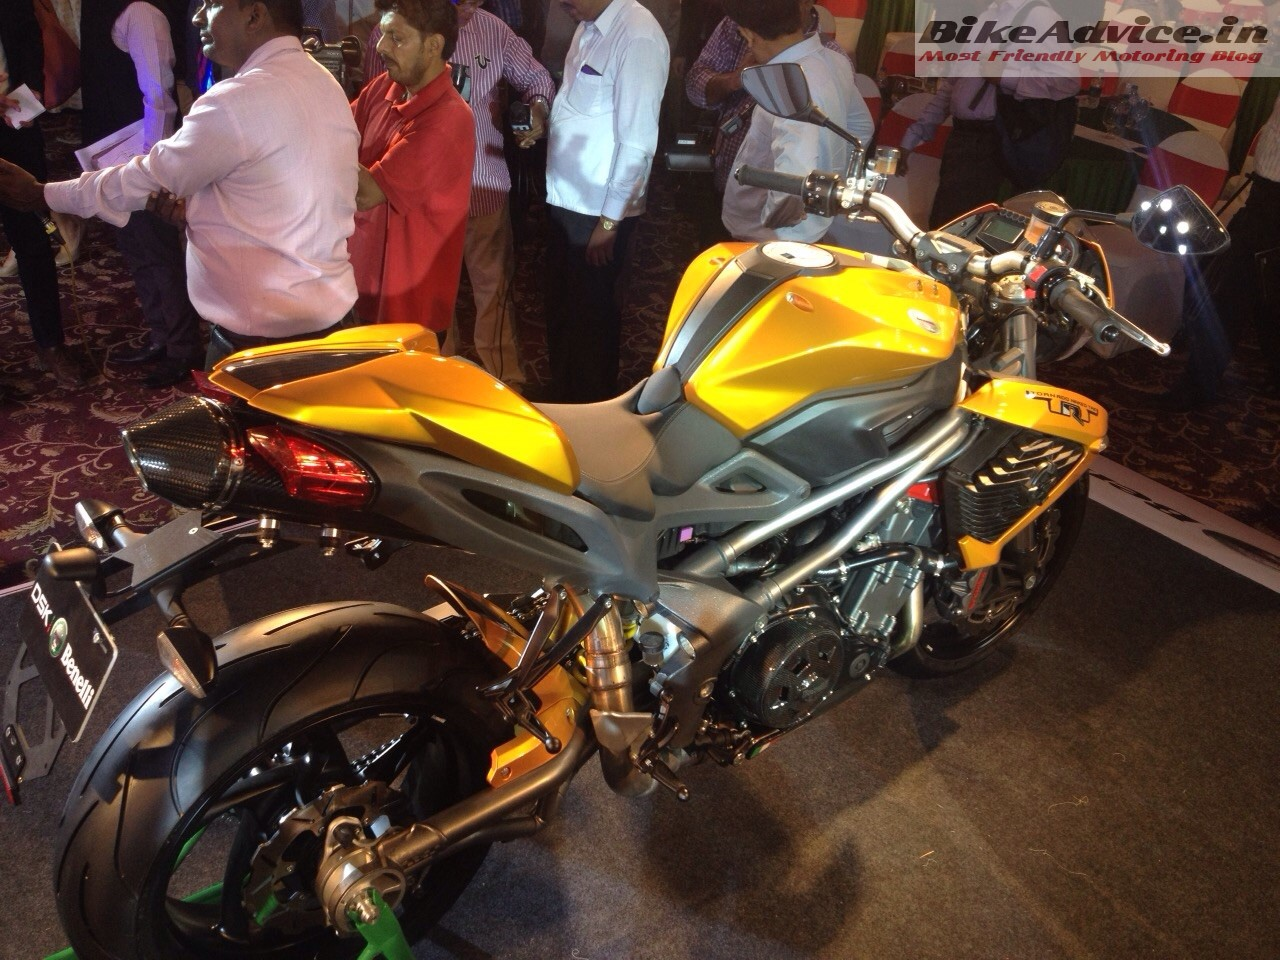 benelli motorcycles launched in india; prices, specs & all details